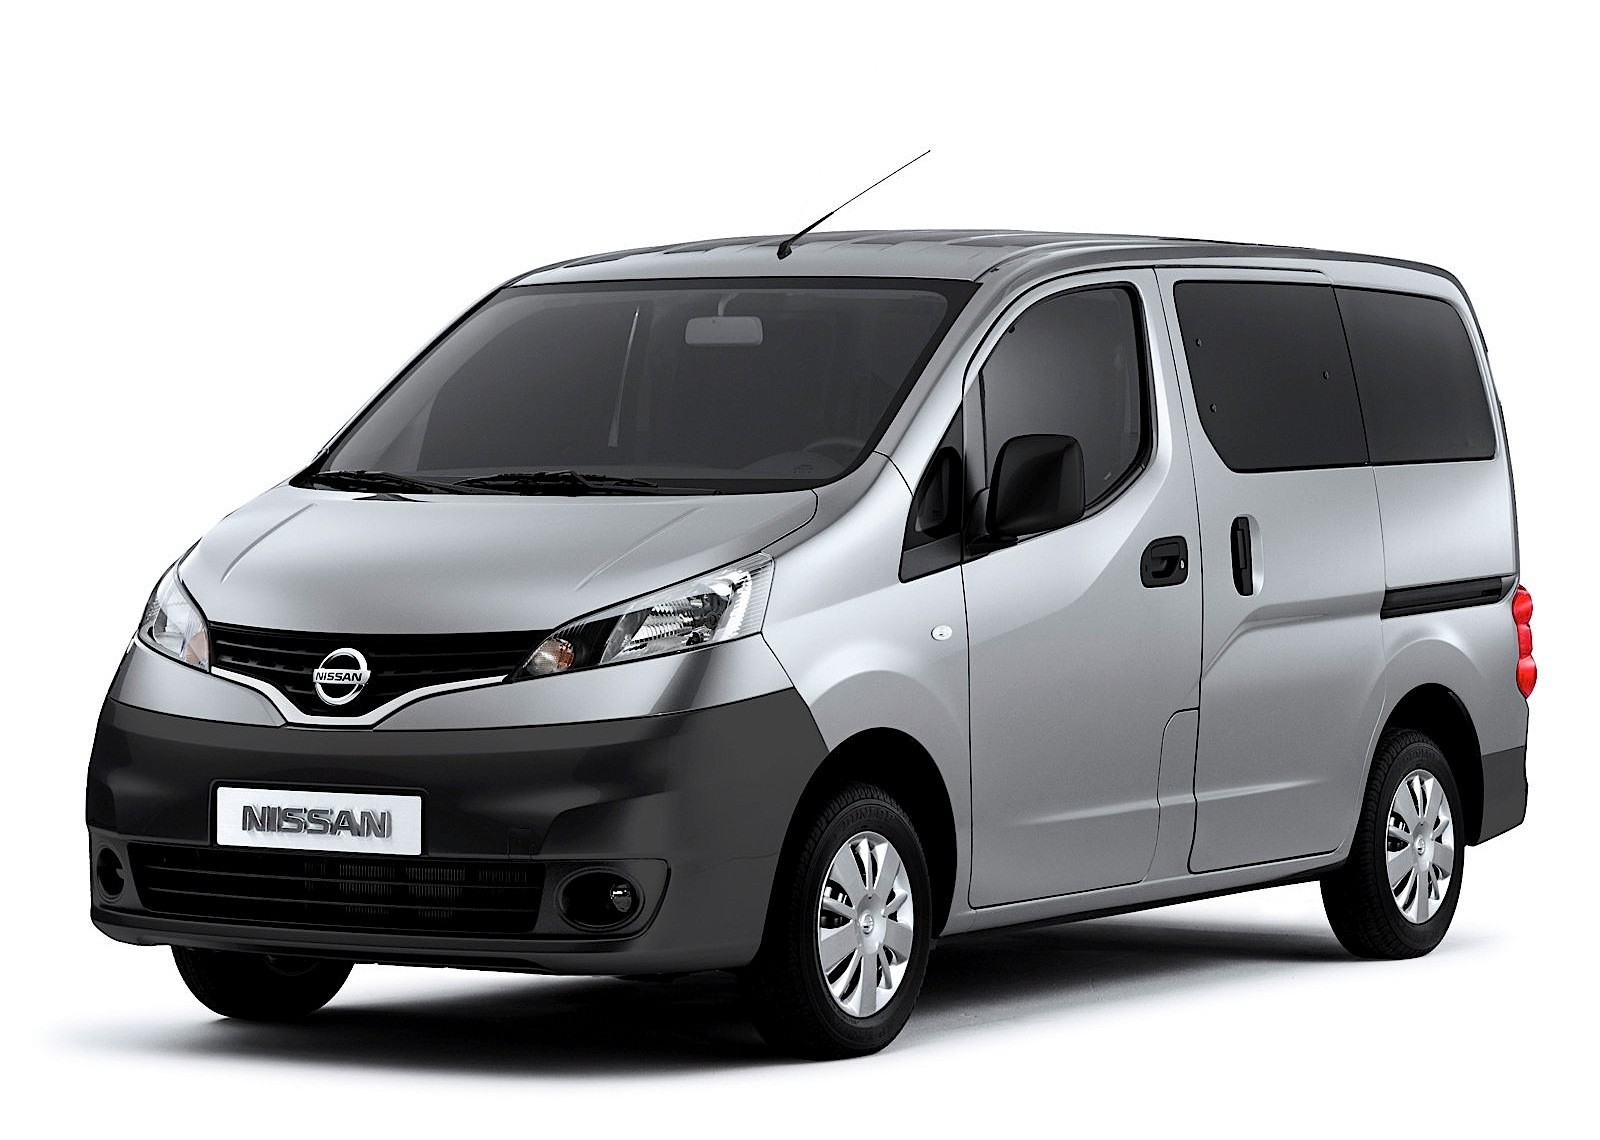 nissan nv200 specs 2009 2010 2011 2012 2013 2014 2015 2016 2017 2018 autoevolution. Black Bedroom Furniture Sets. Home Design Ideas